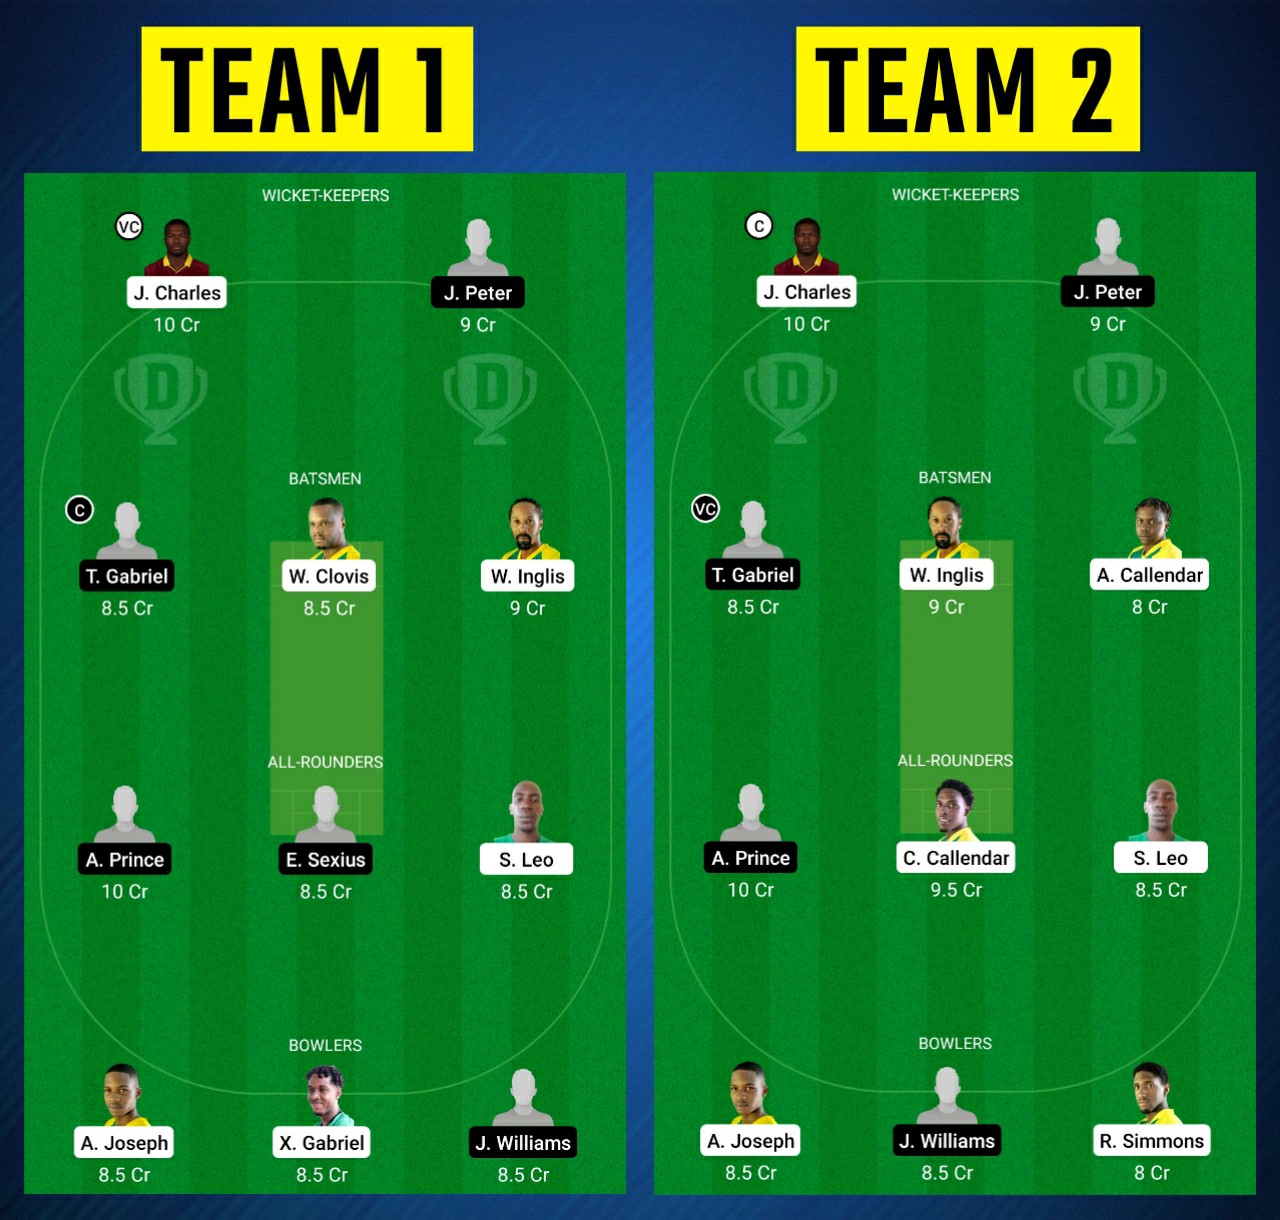 Here are the SCL vs VFNR last match scorecard of both the teams and also Sportstime247 is providing the best dream11 prediction for the match